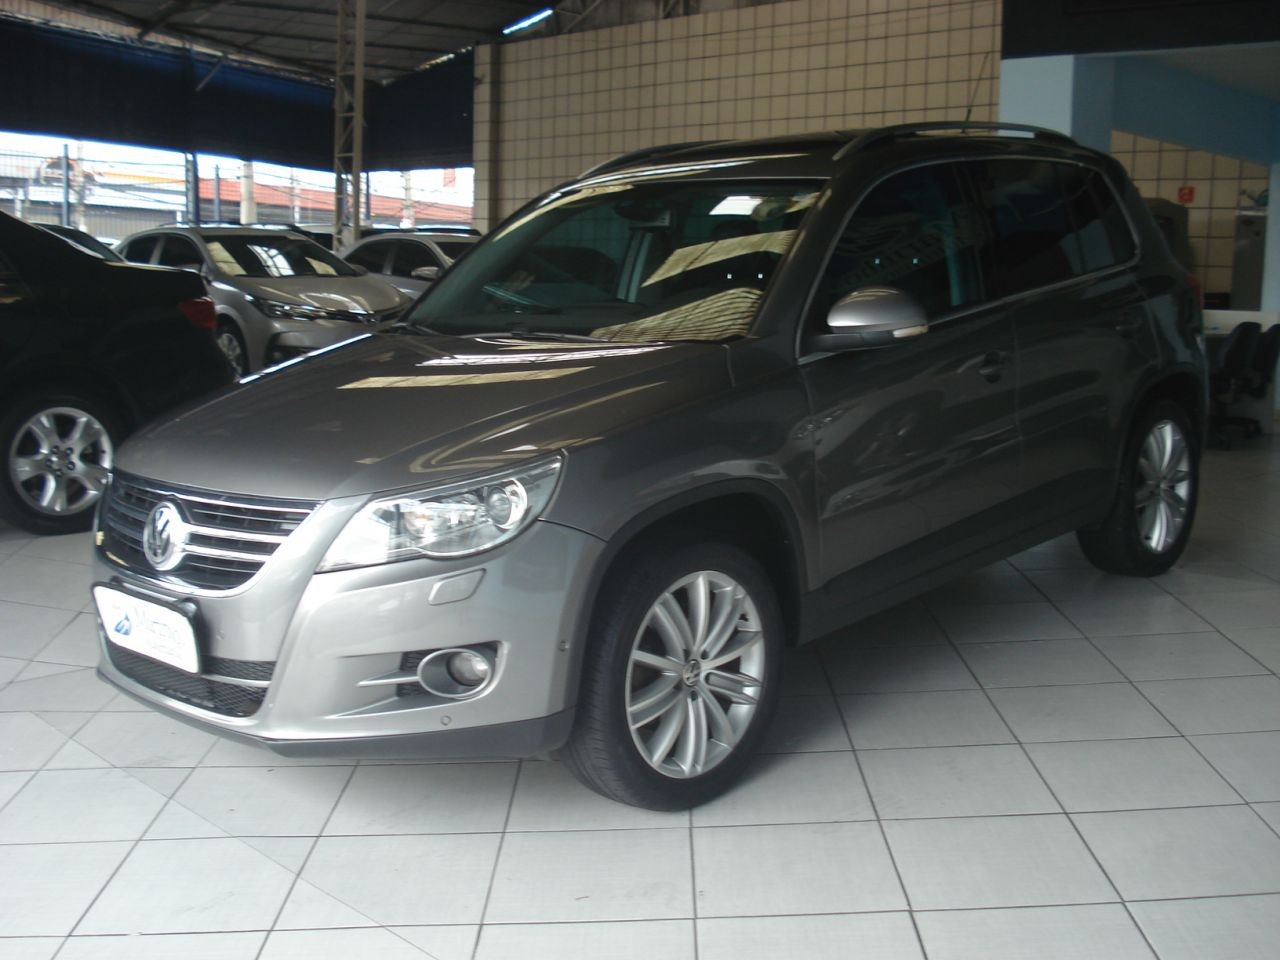 VW TIGUAN 2.0 TSI 16V TURBO GASOLINA 4P TIPTRONIC